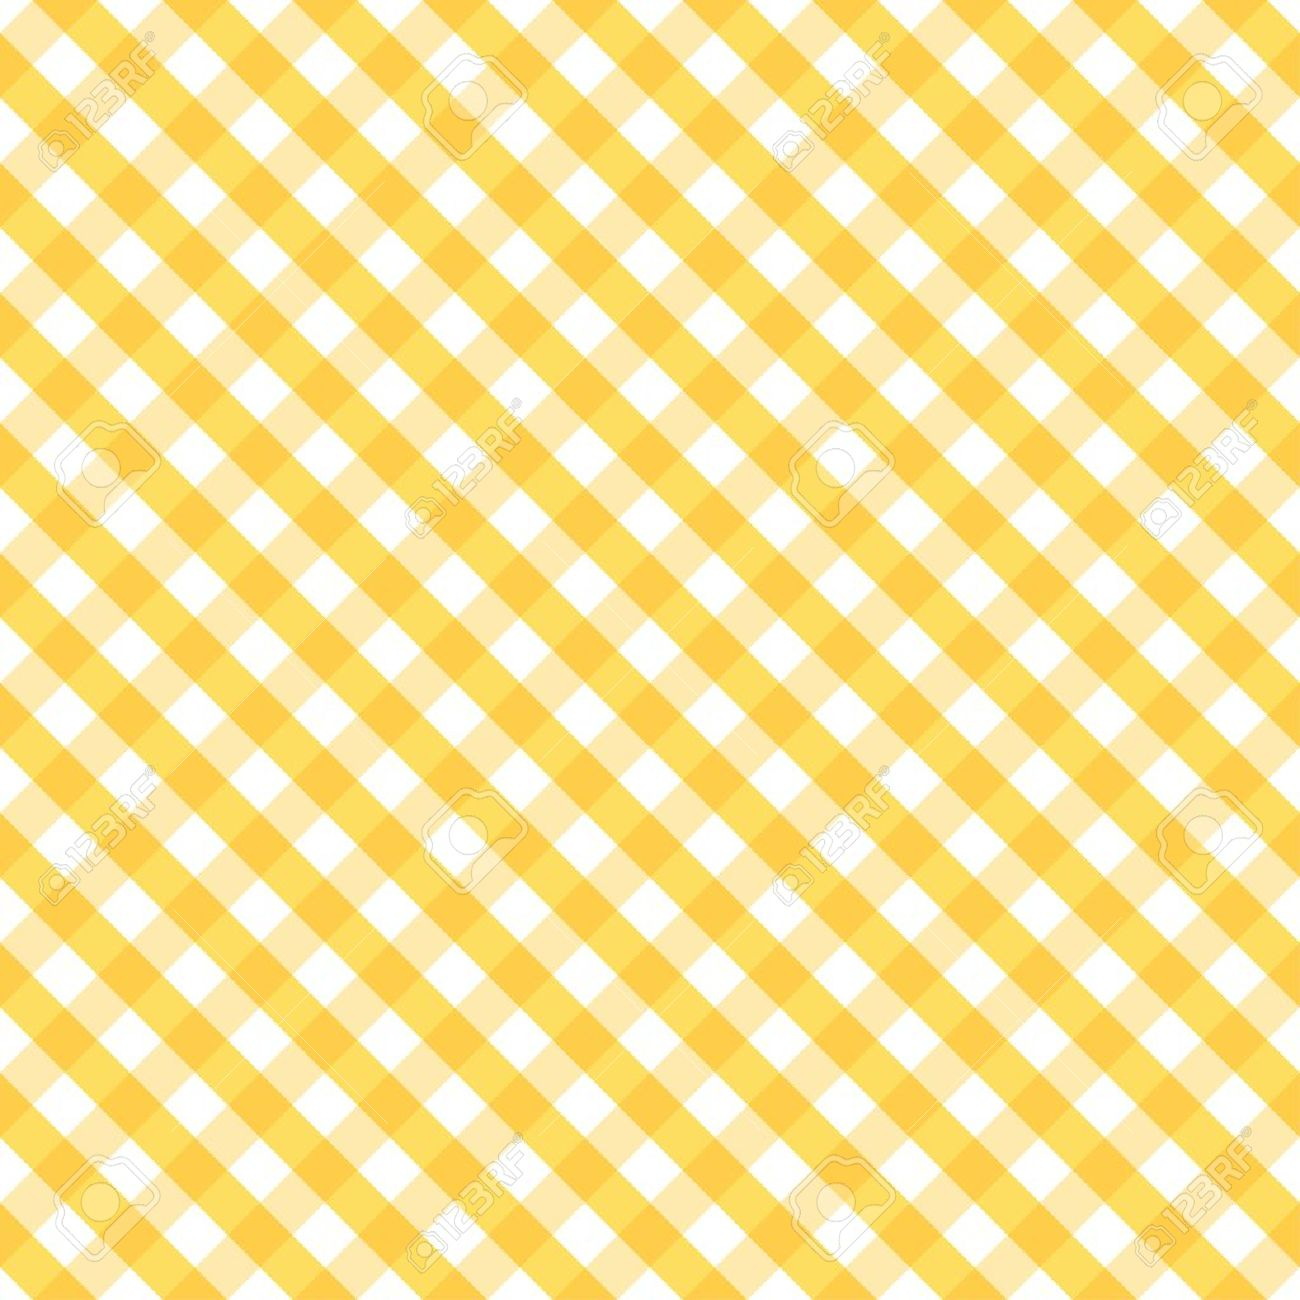 Seamless Cross Weave Gingham Pattern in yellow and white includes pattern swatch that will seamlessly fill any shape - 14202155